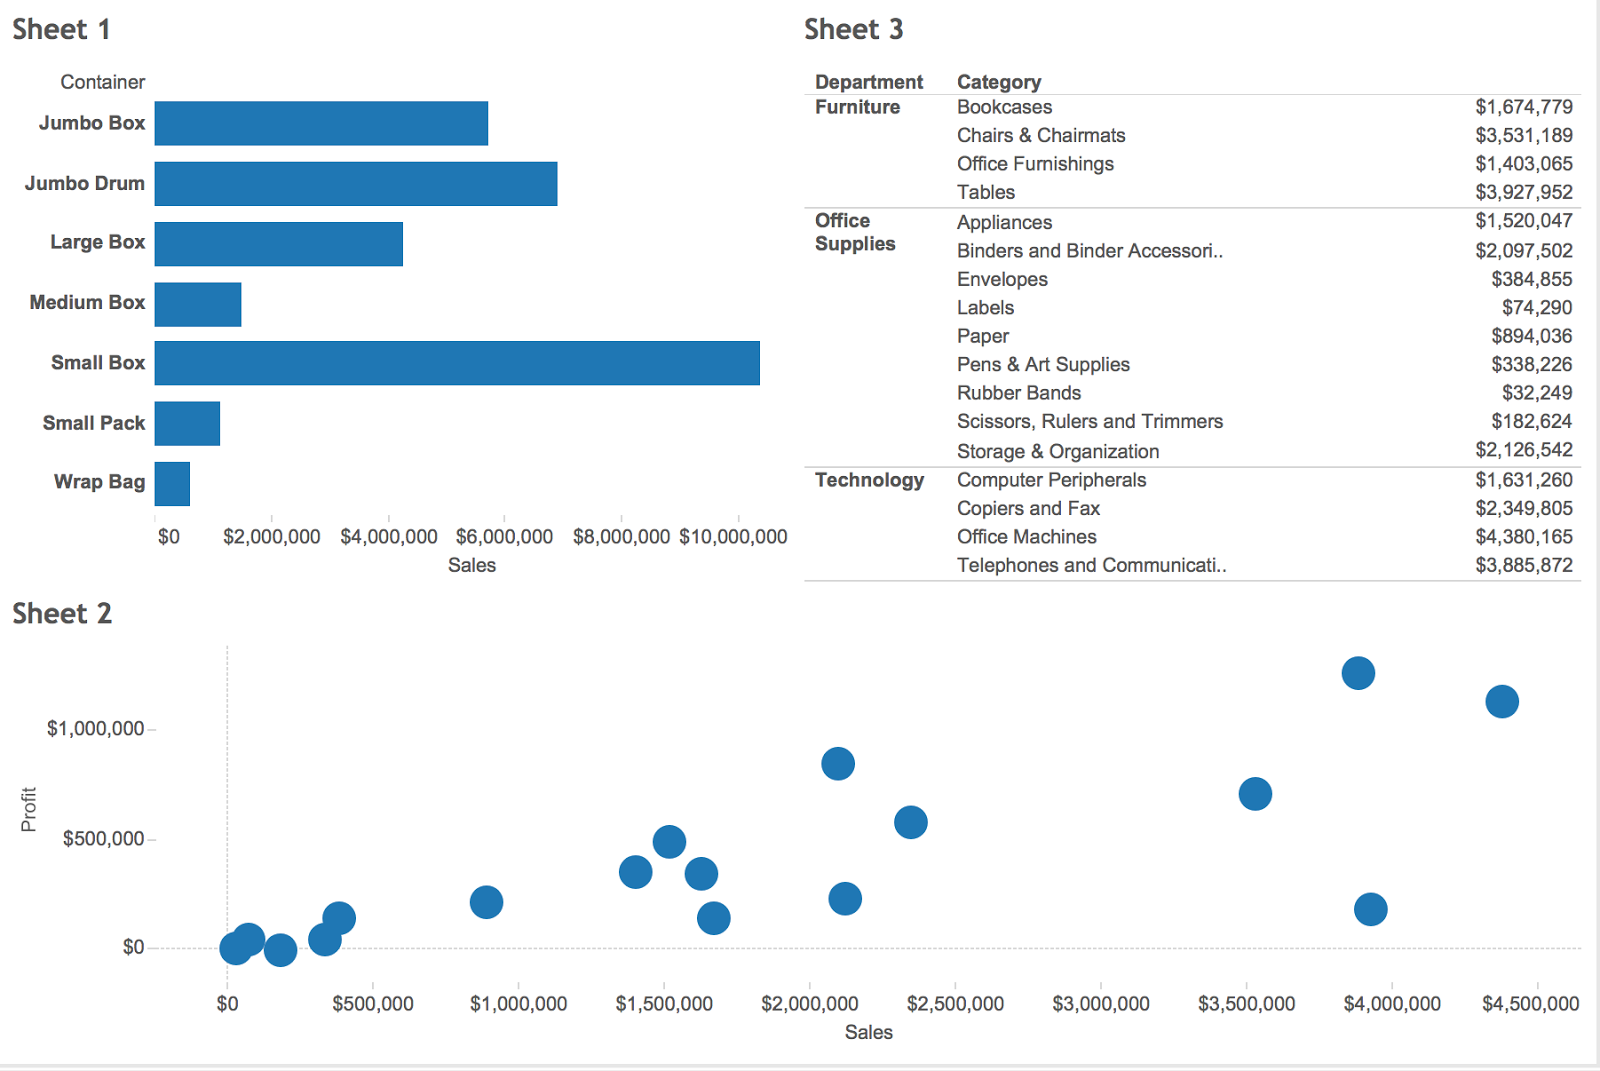 Paint By Numbers: 6 Simple Formatting Tricks to Tableau Like